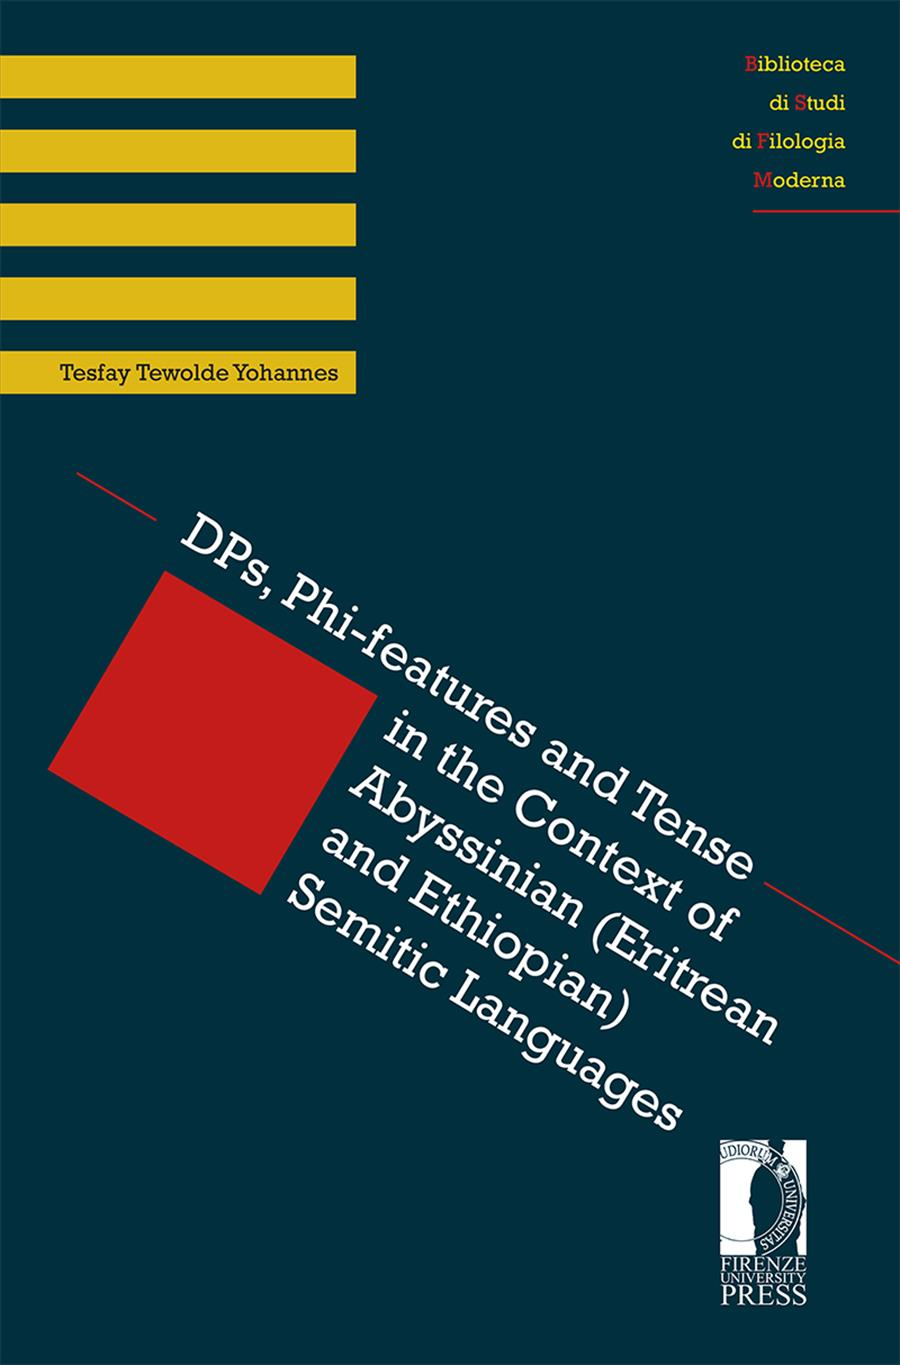 DPs, Phi-features and Tense in the Context of Abyssinian (Eritrean and Ethiopian) Semitic Languages